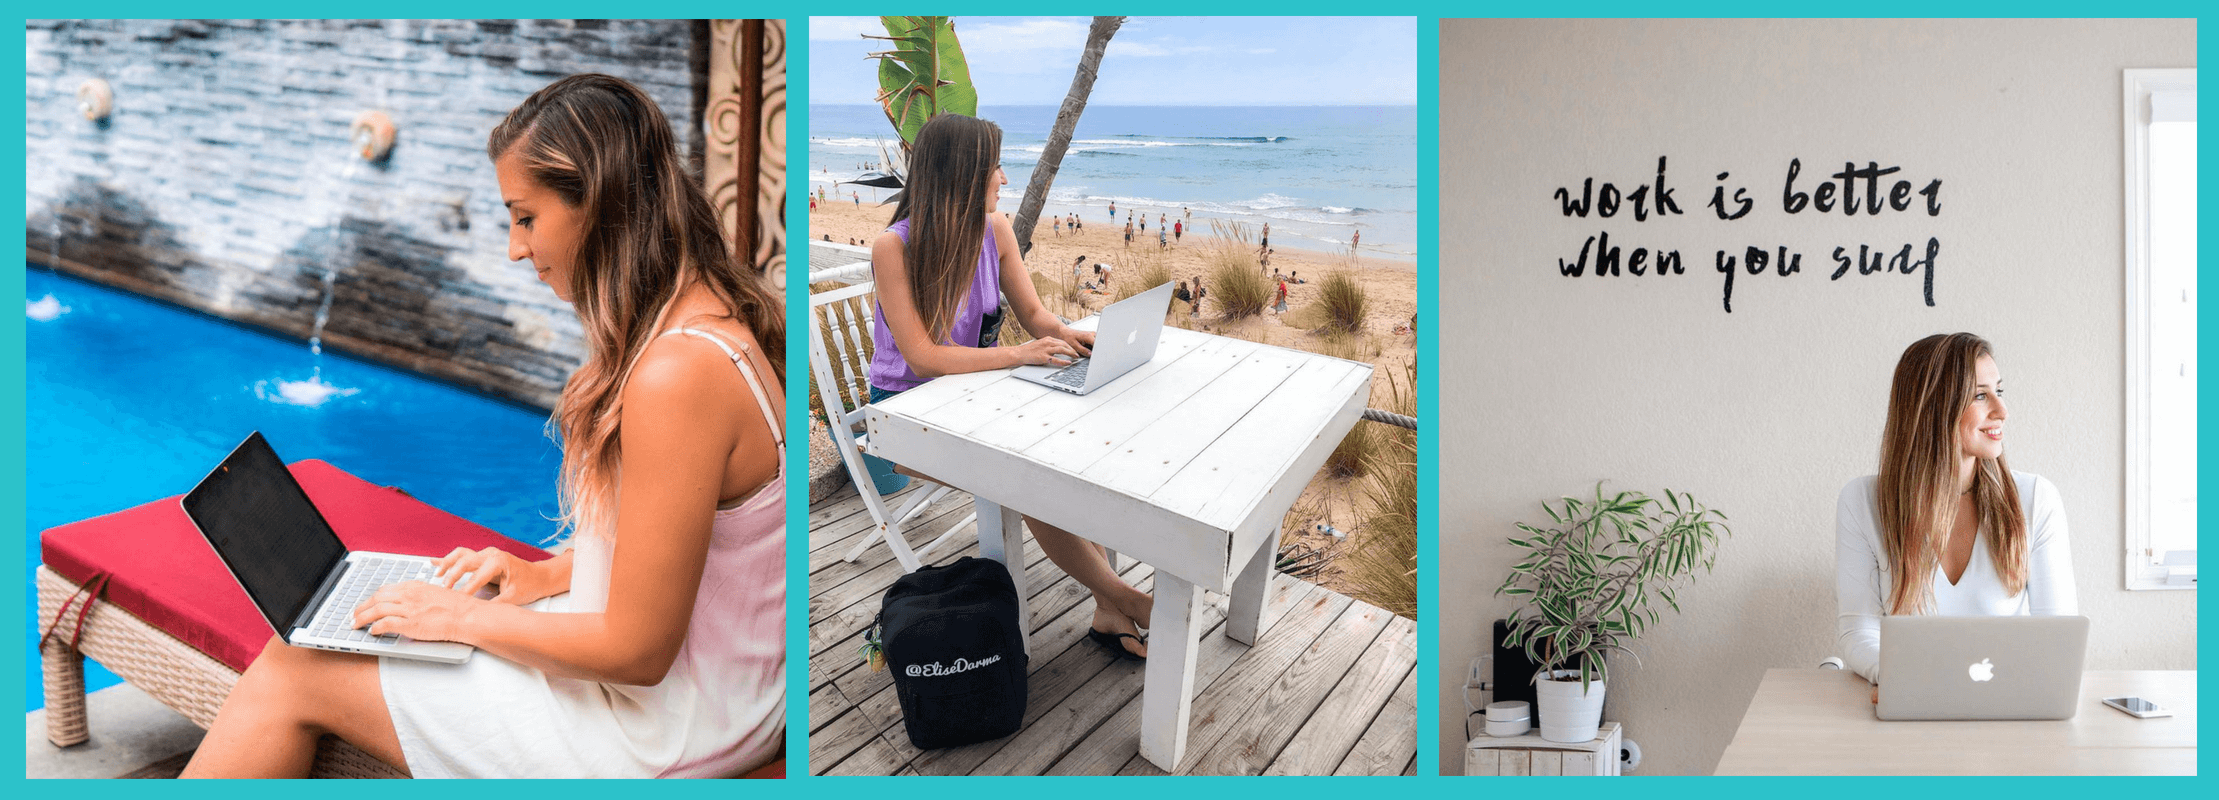 Armed with my laptop, I can set up my workspace literally anywhere. Here I am working in 1) Bali, Indonesia, 2) Lisbon, Portugal and 3) Encinitas, California. Pretty convenient, right?